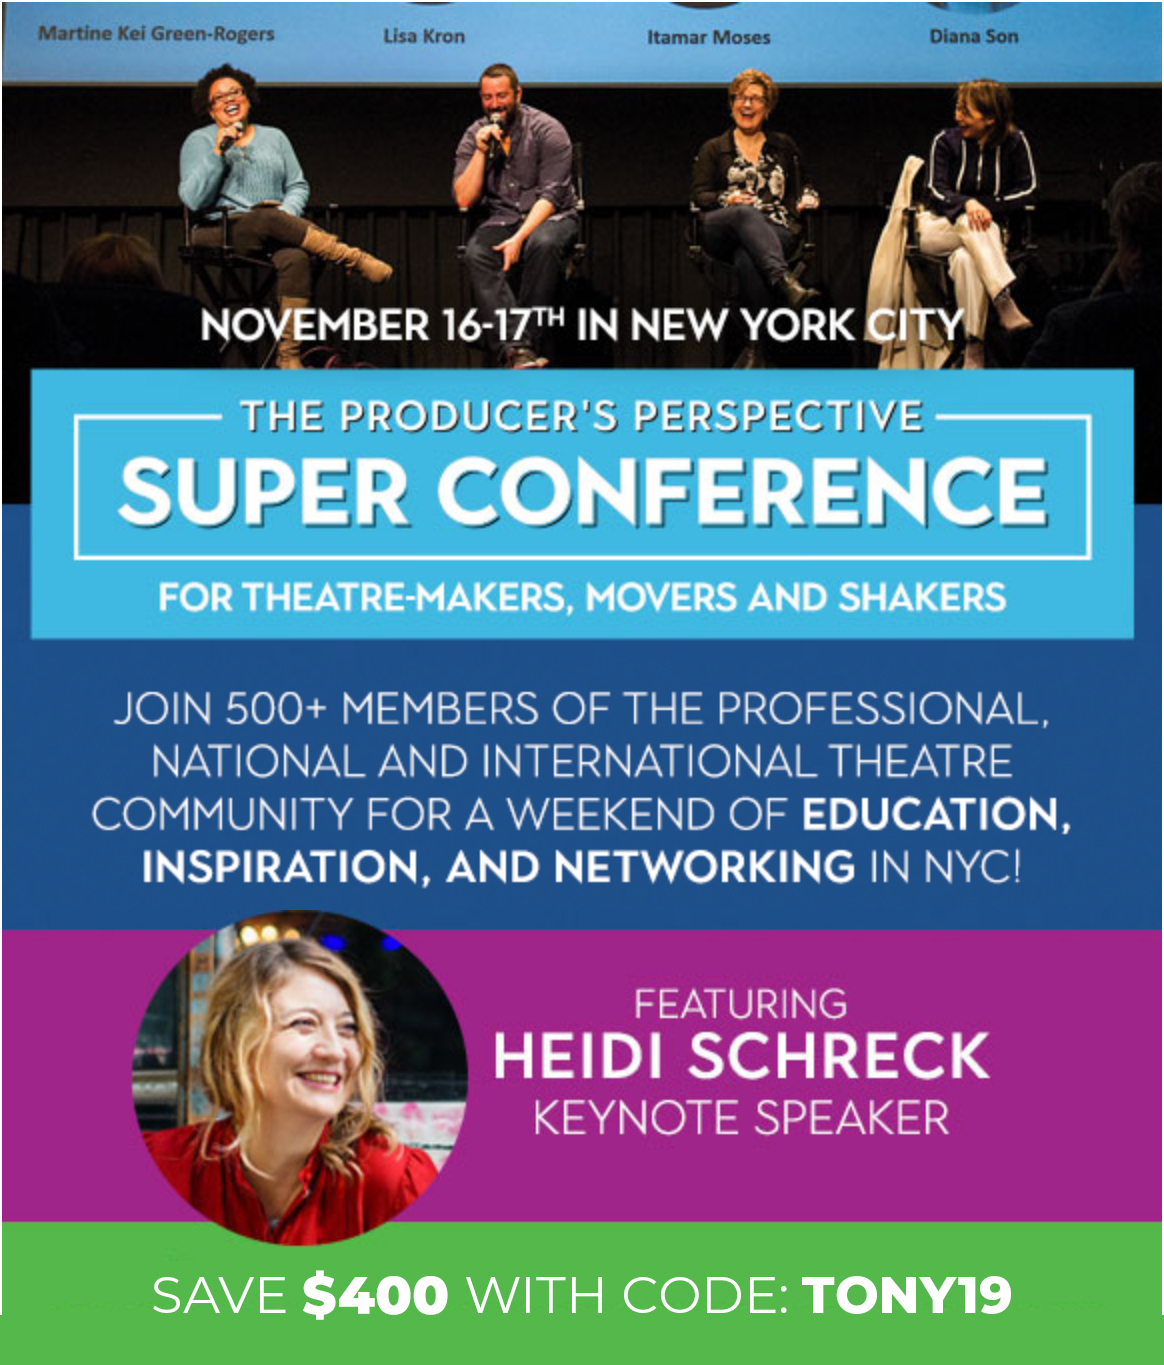 education, inspiration + networking - Day to day, Mary is also the Manager of Events for Davenport Theatrical Enterprises, Inc. (founded by Tony Award-winning Broadway Producer Ken Davenport).Katherine and I attended their spring Promote U conference and were blown away. Mary, Ken, and company have graciously offered us a $400 coupon code to the fall Super Conference event.This 2-day conference for theatre-makers is designed to help you achieve the things you want to achieve in the business. Whether you want to write, or act, or produce, or direct . . . the 15+ panels and presentations will help you get to the next stage.